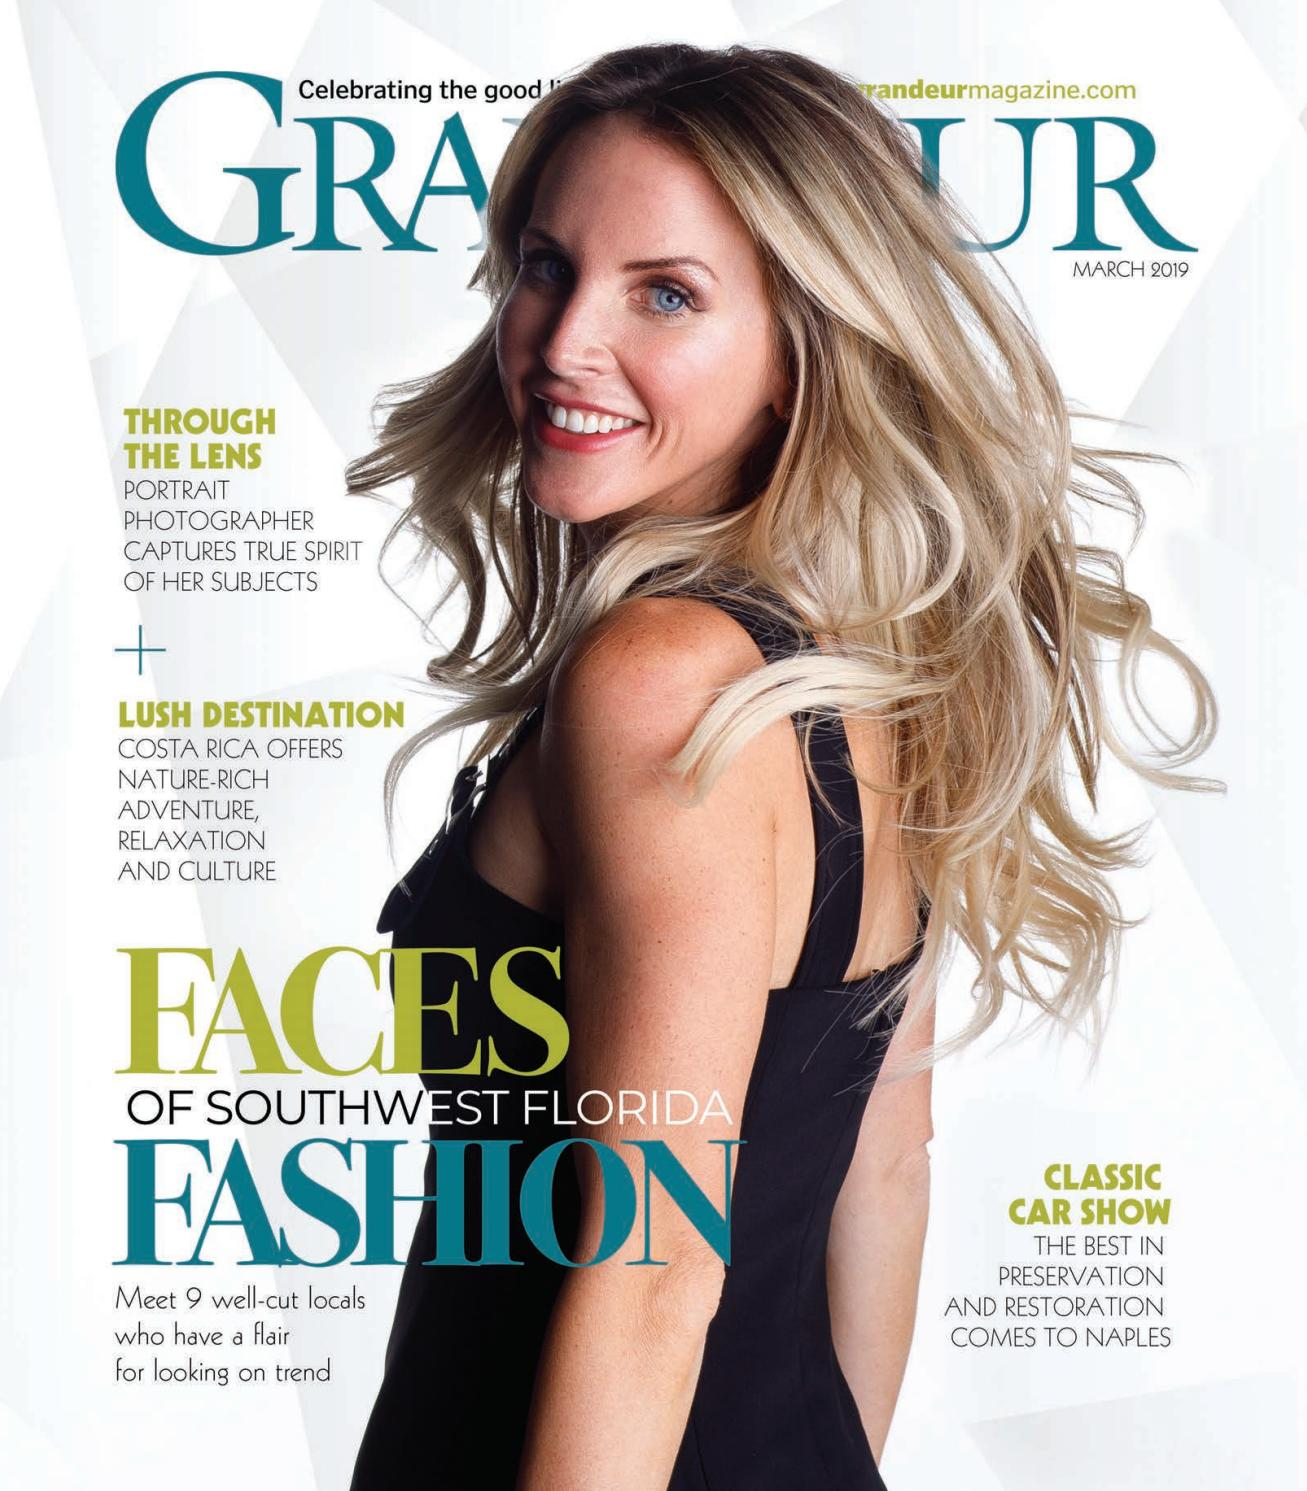 sale retailer 54079 2d77f Grandeur Magazine March 2019 by Grandeur Magazine - issuu